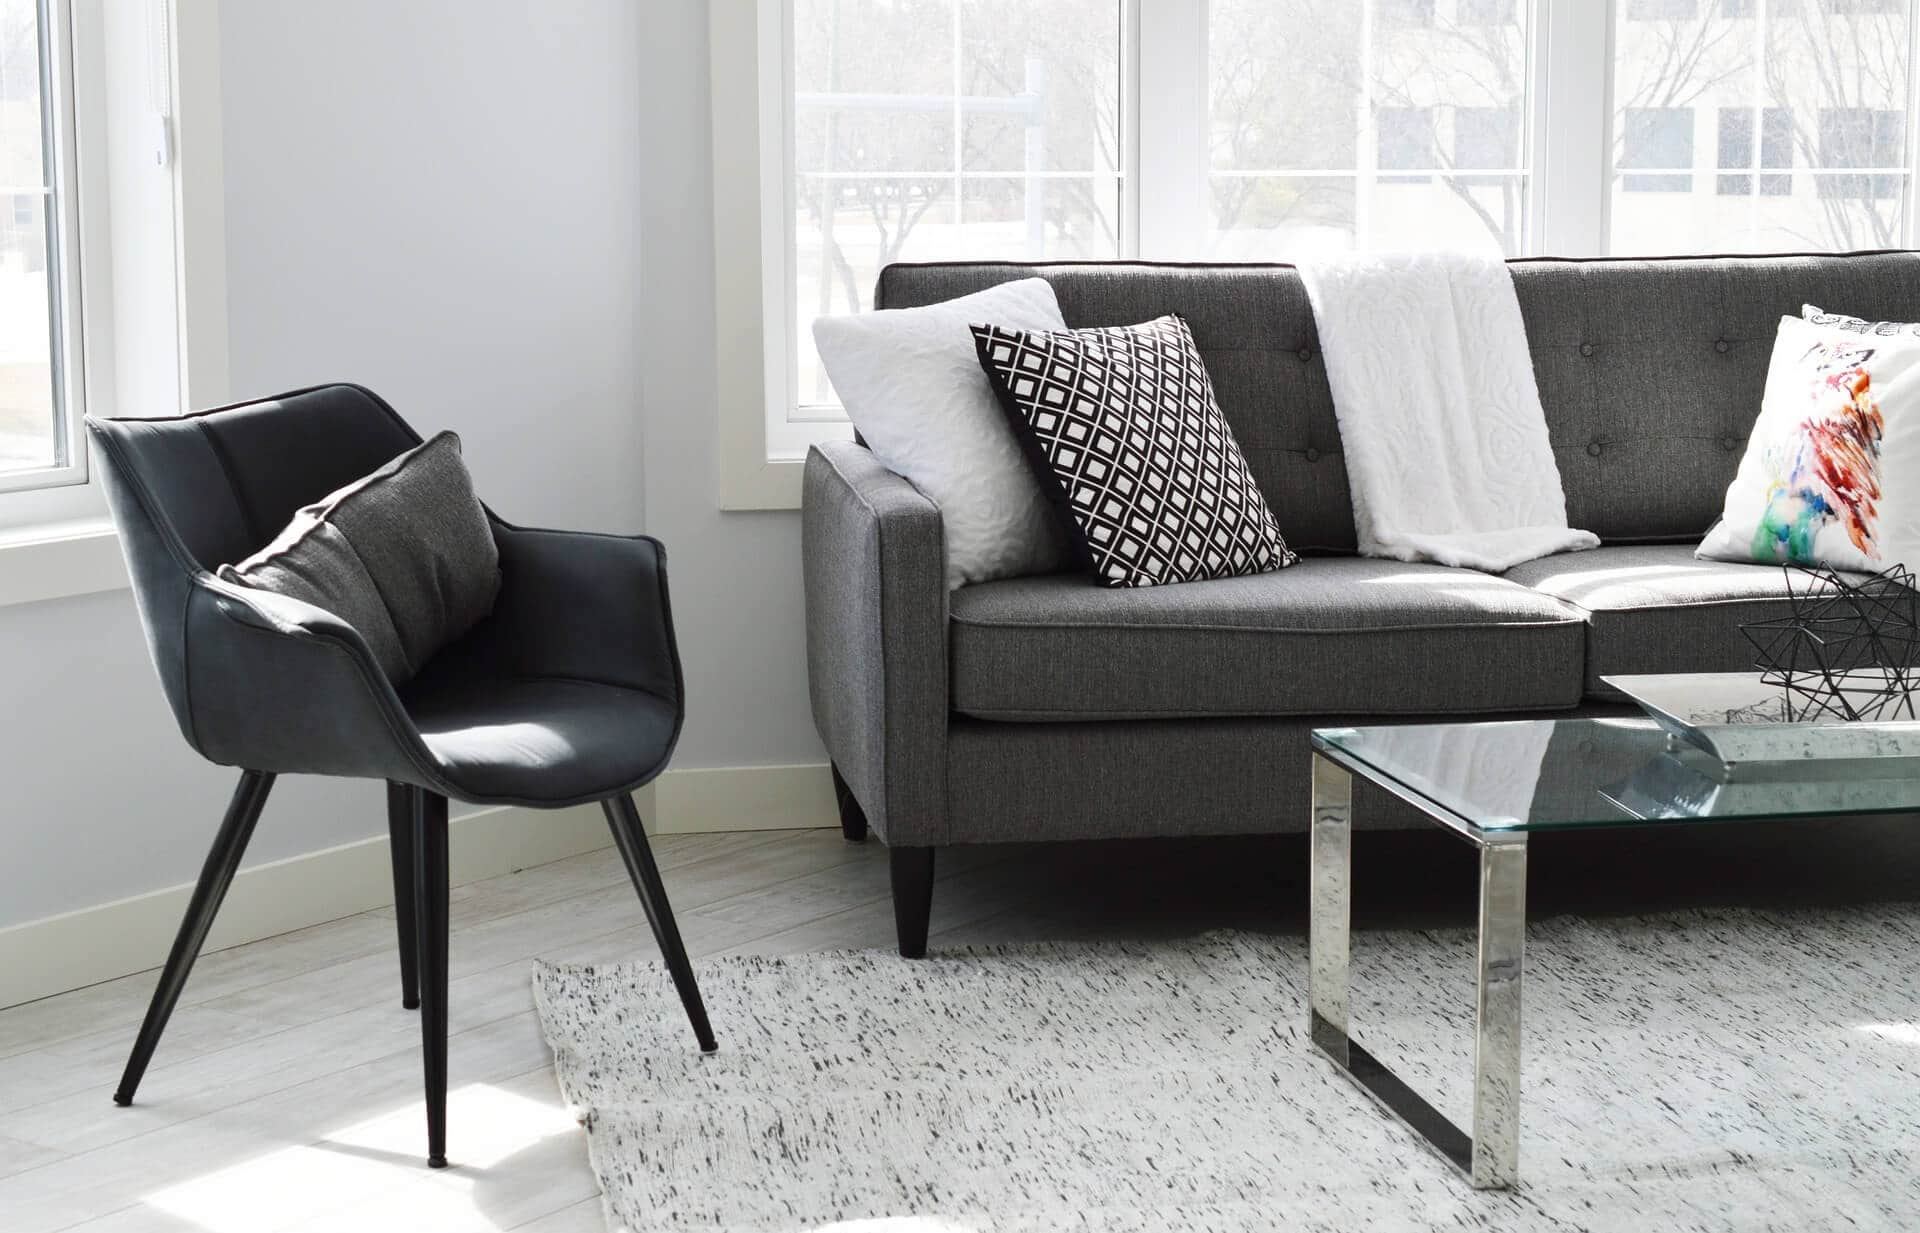 Best selling living room chairs an independent review dontbuythischair for Best place to buy living room sets